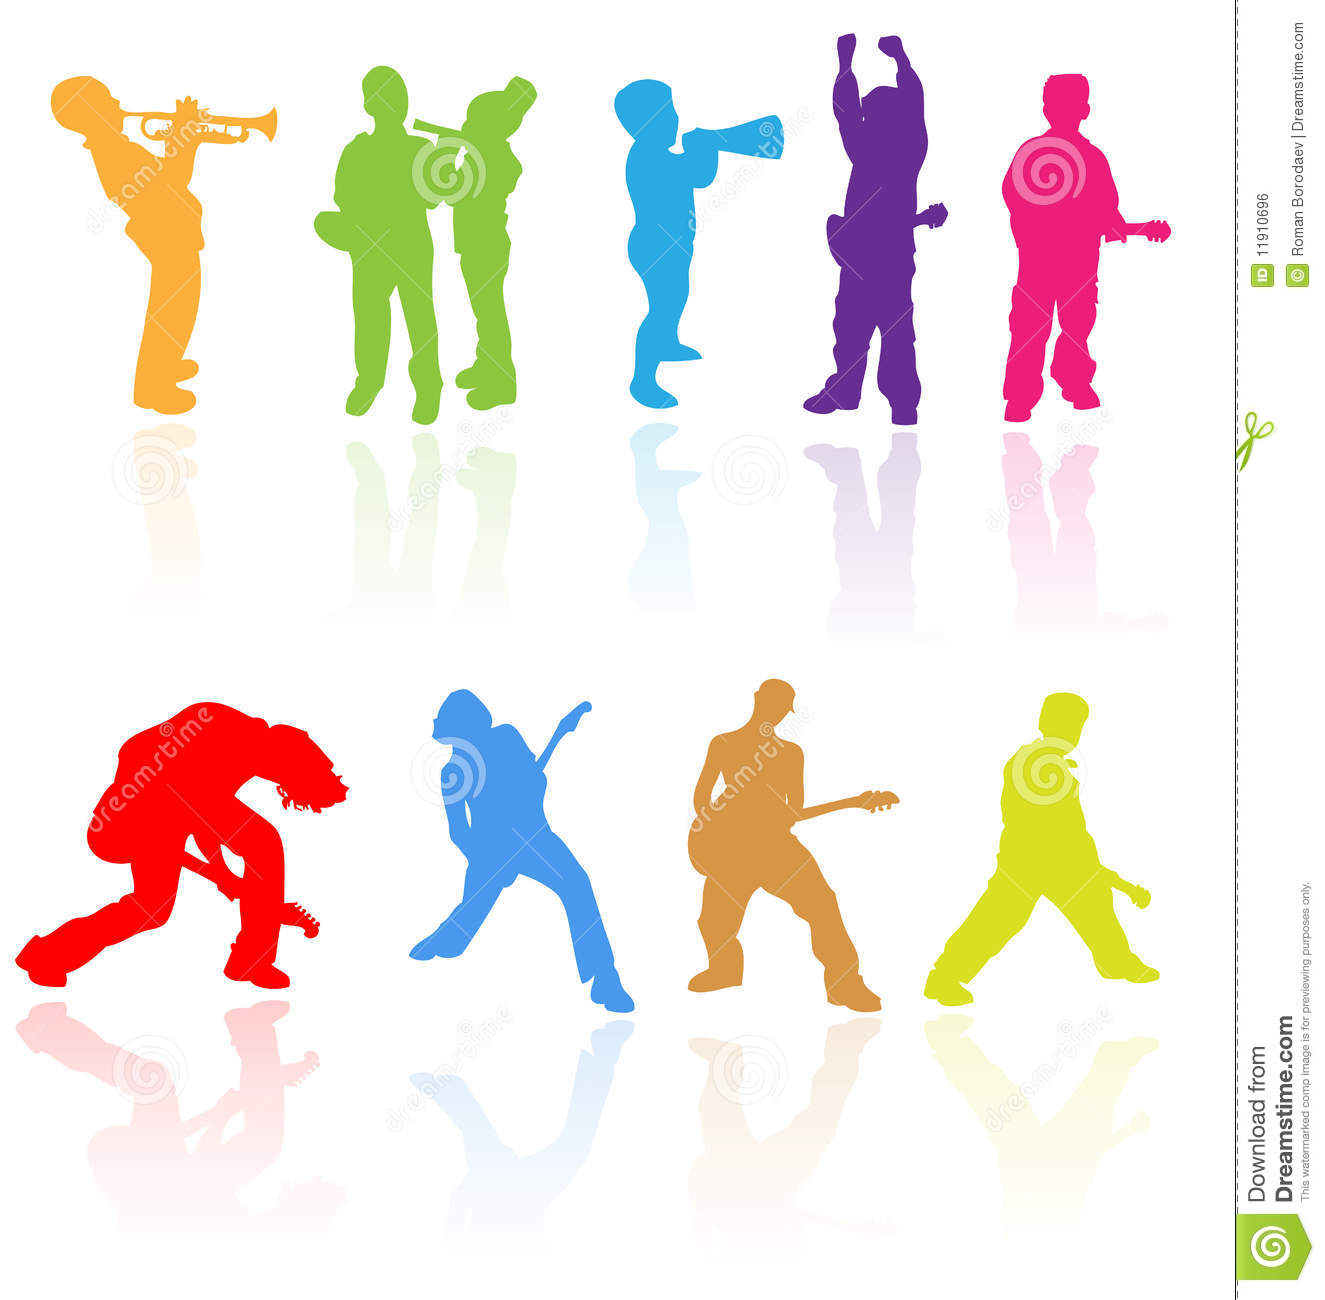 Kids children teens rock music band silhouette young child people musical clip art saxophone guitar playing play jazz youth group